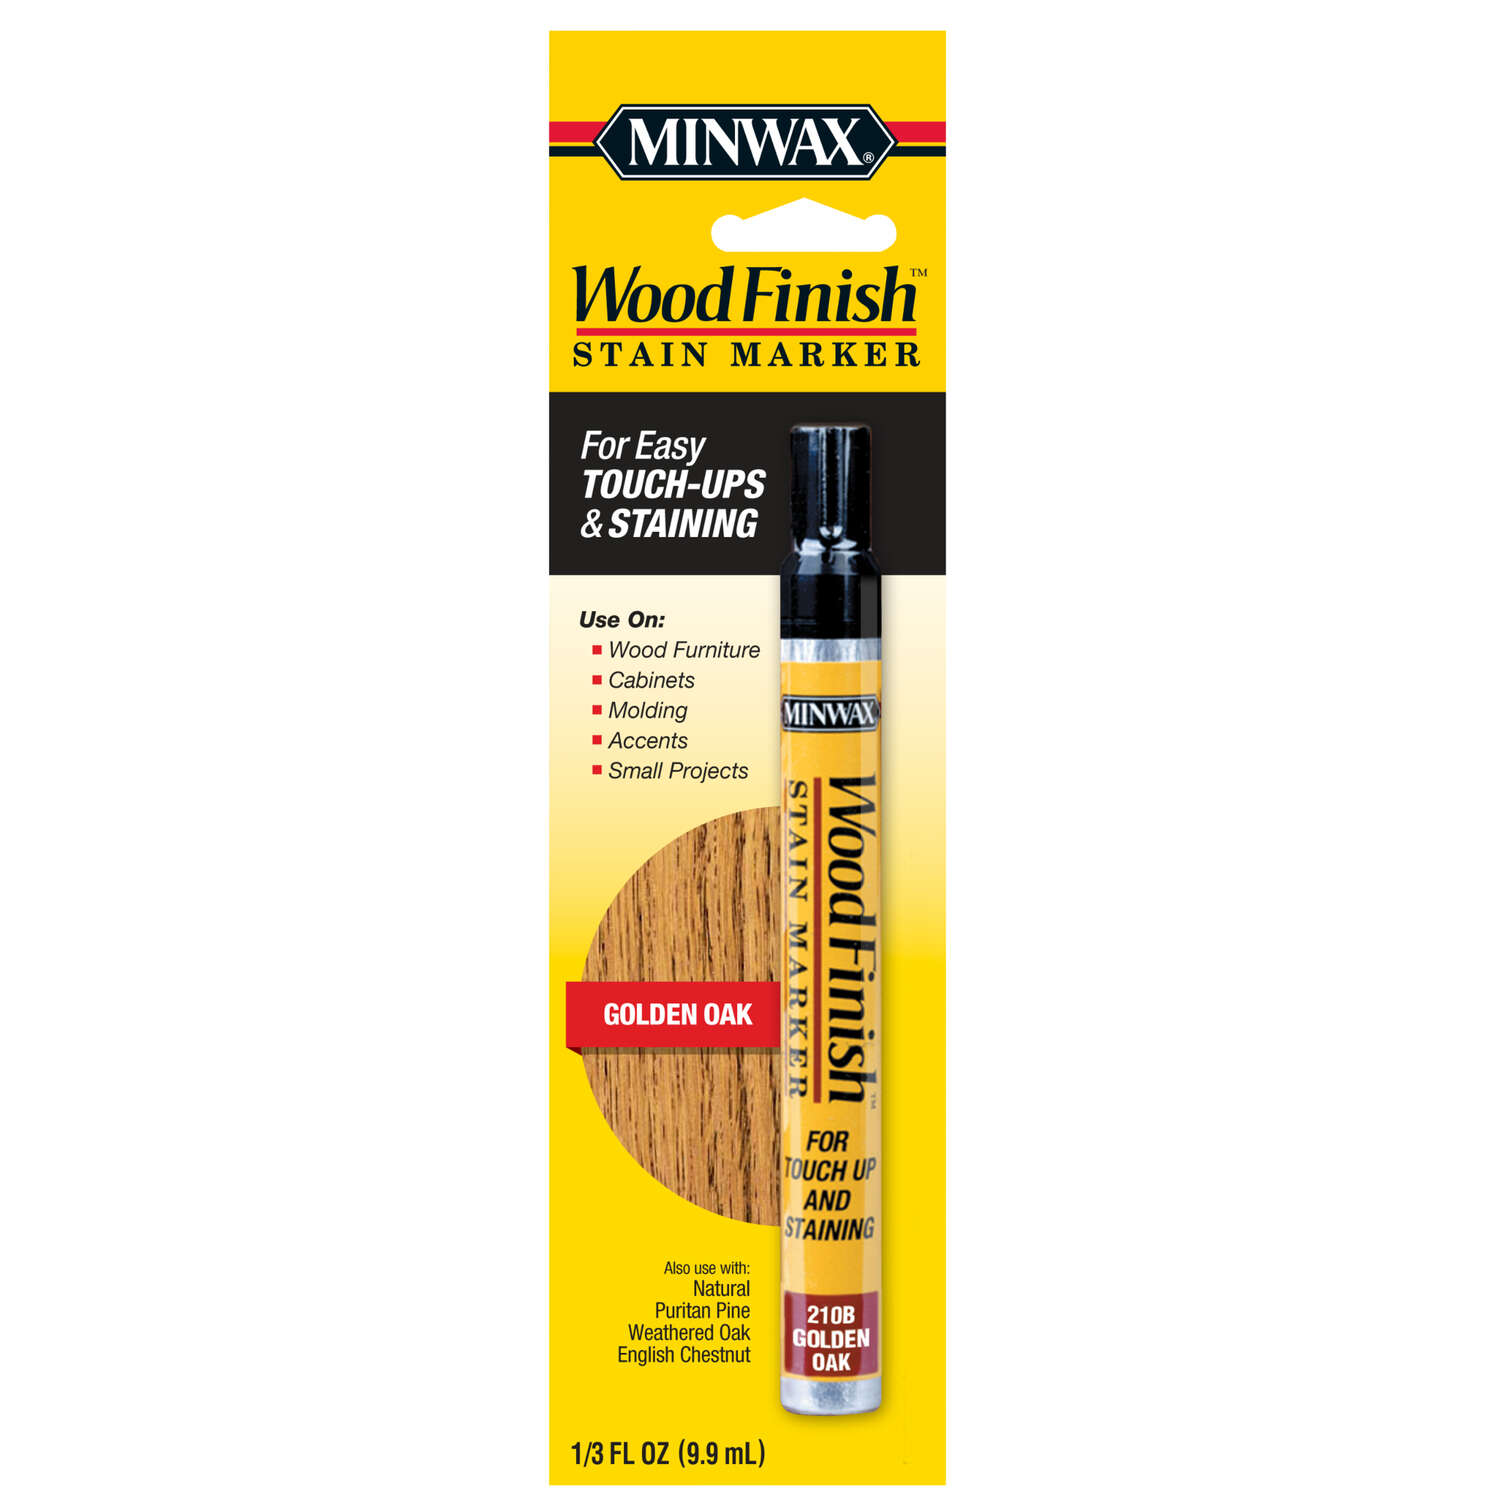 Minwax  Wood Finish  Semi-Transparent  Golden Oak  Oil-Based  Stain Marker  0.33 oz.